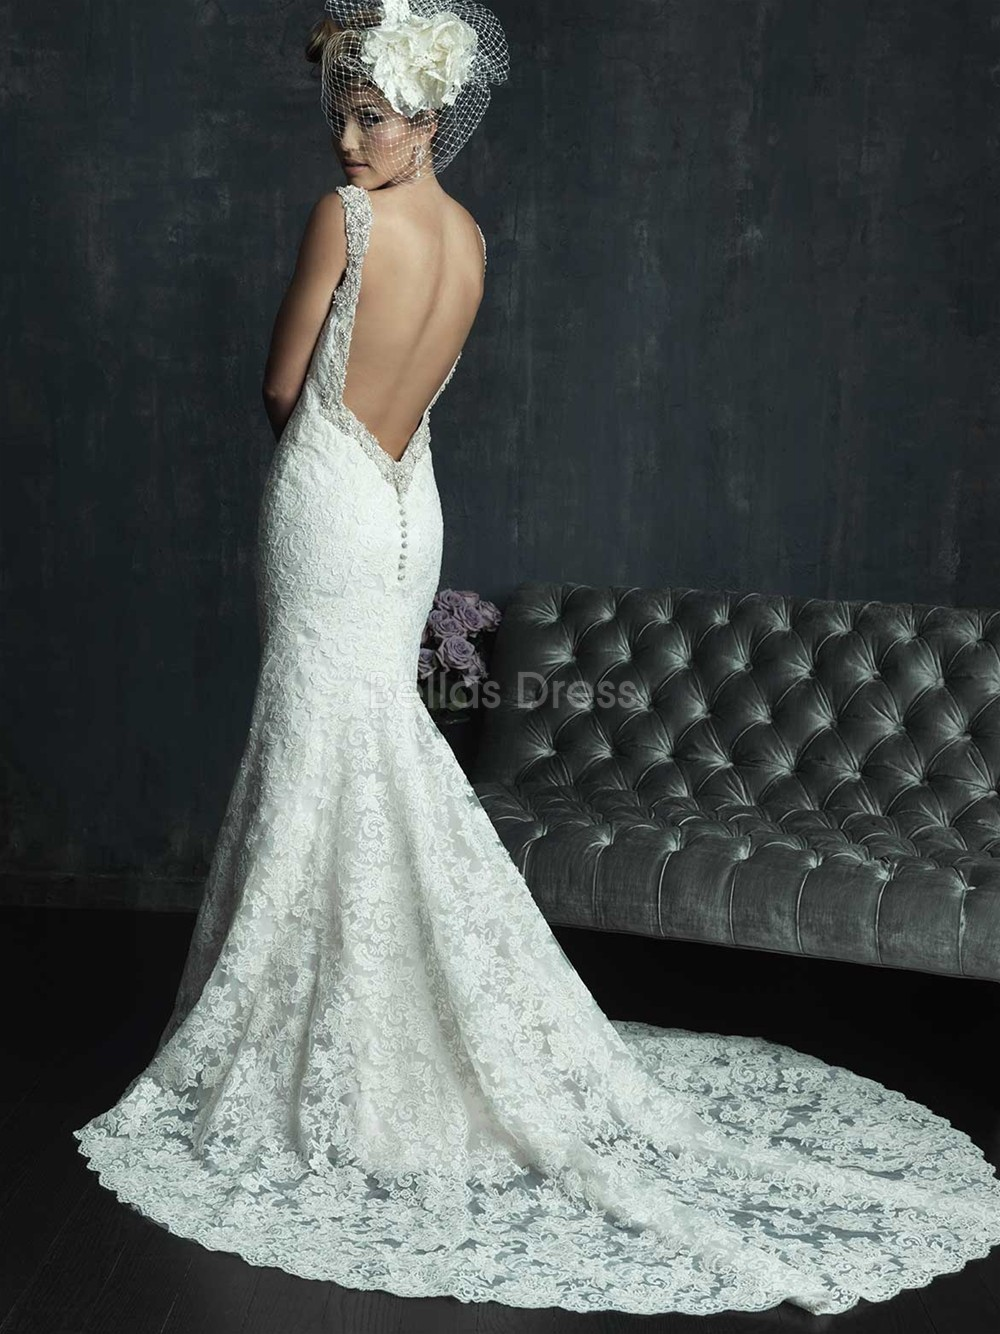 the wedding gown lavish wed